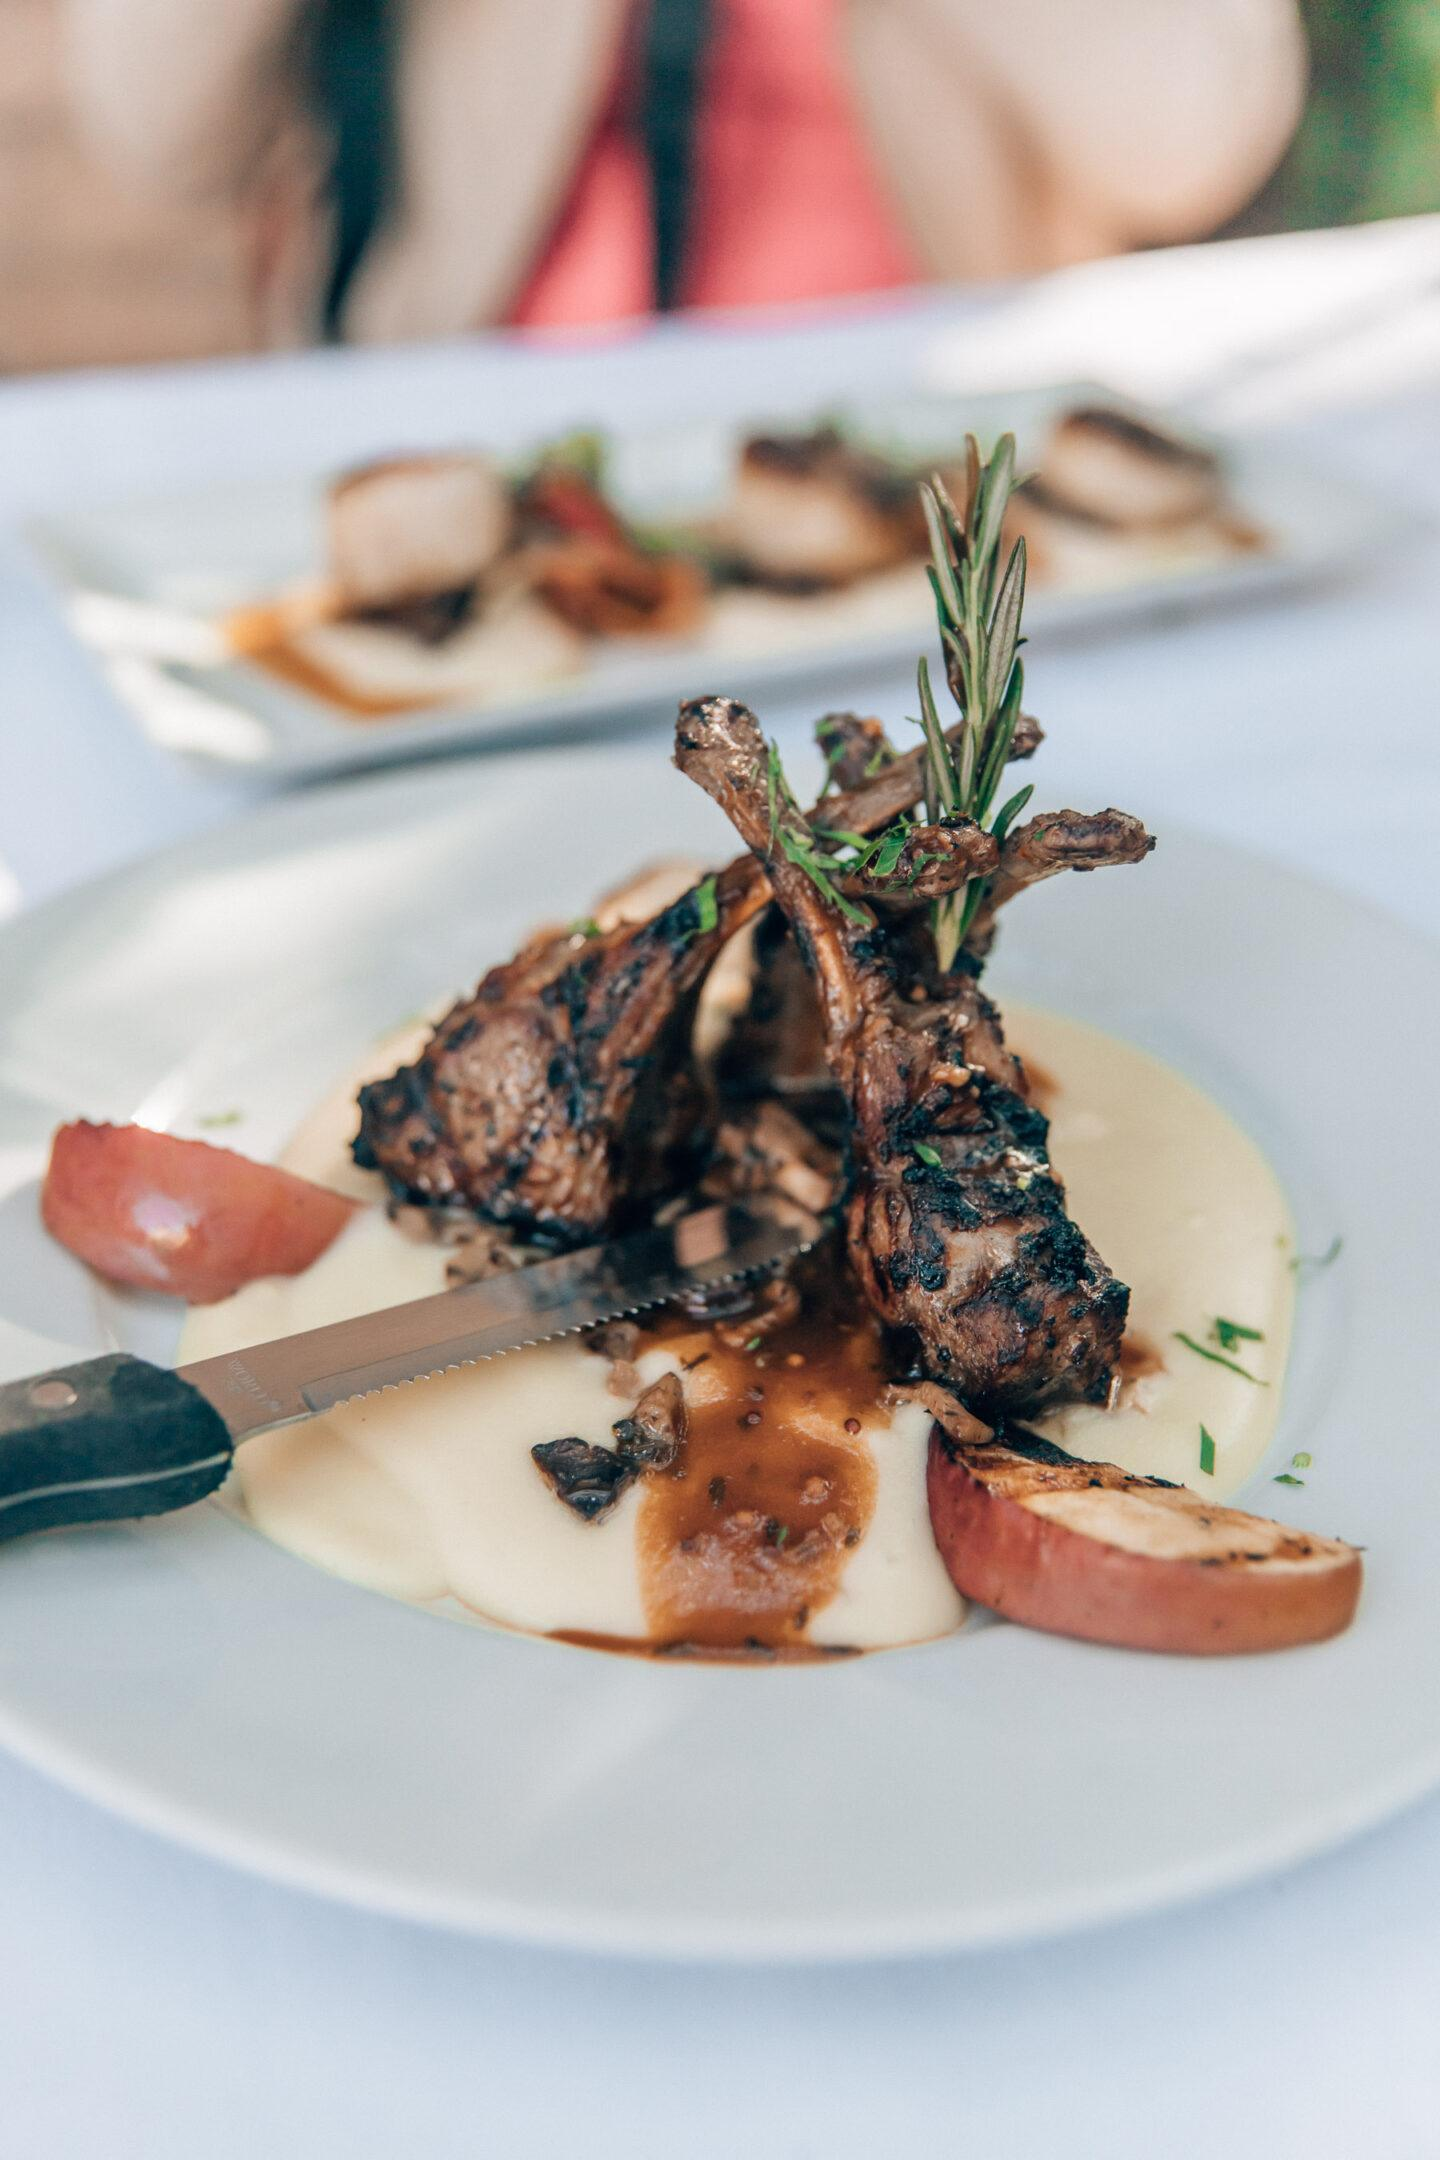 Best restaurants in SLO, by travel blogger What The Fab